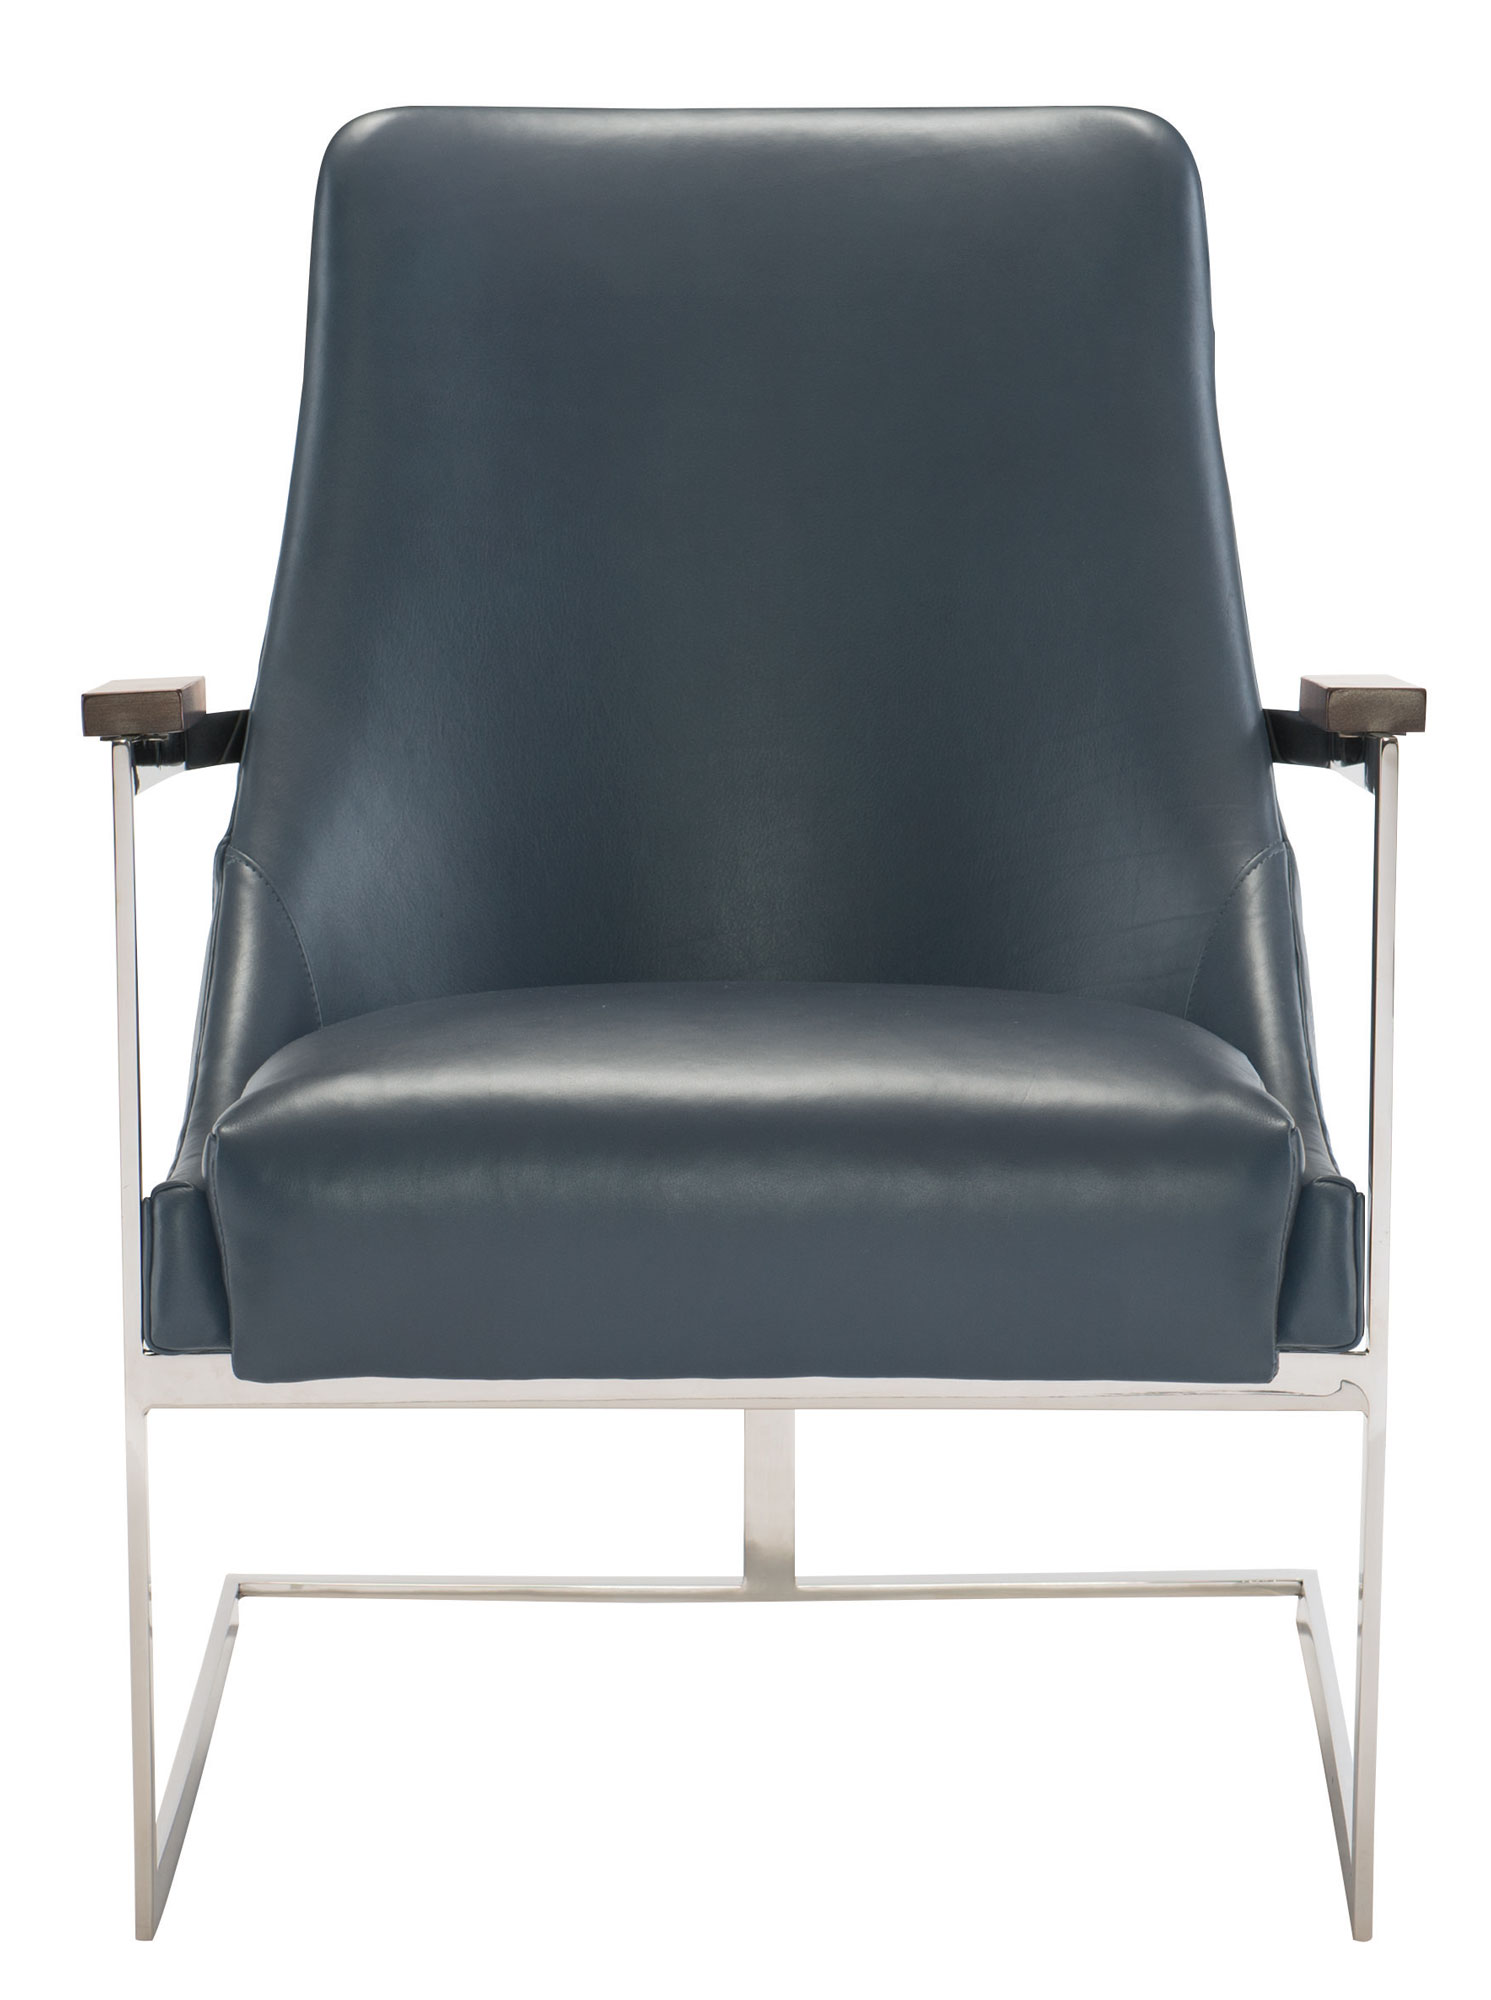 Copyright 169 2017 the design co all rights reserved - Edmond Chair